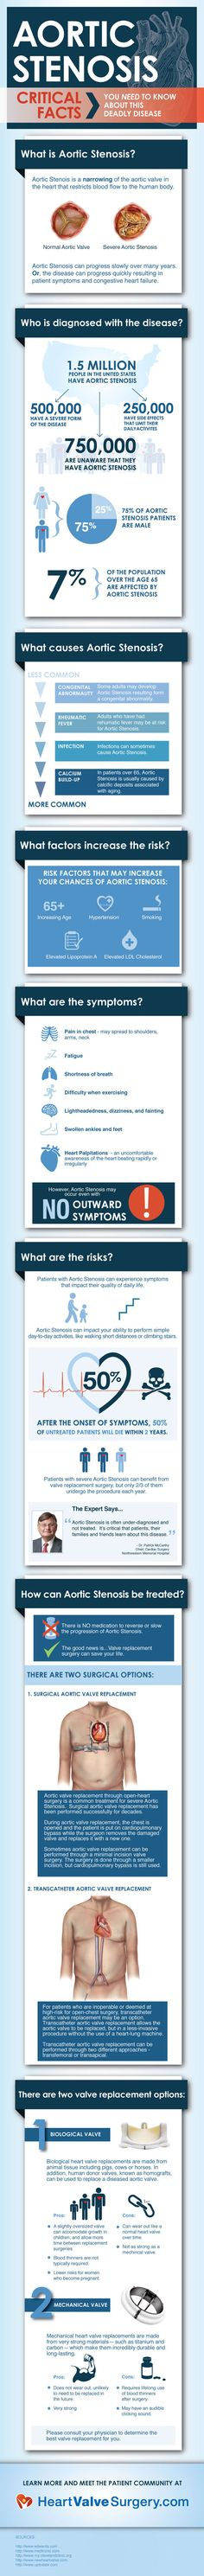 New Aortic Stenosis Infographic Raises Social Awareness to Dangers of Heart Valve Disease